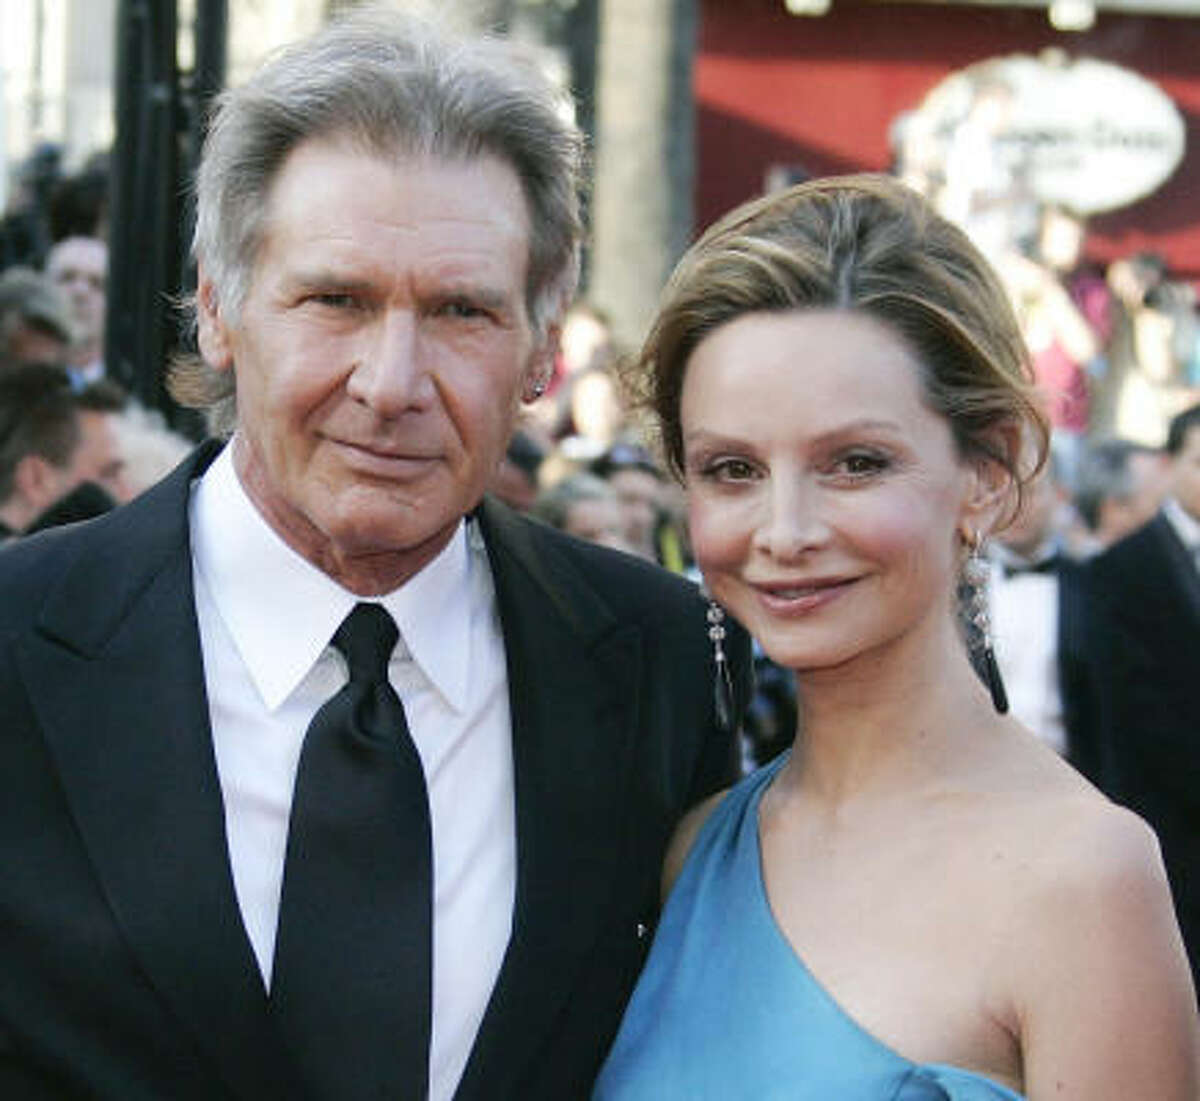 Harrison Ford and Calista Flockhart married in June in Santa Fe after about a decade of dating. Harrison wore a pair of Wrangler jeans.